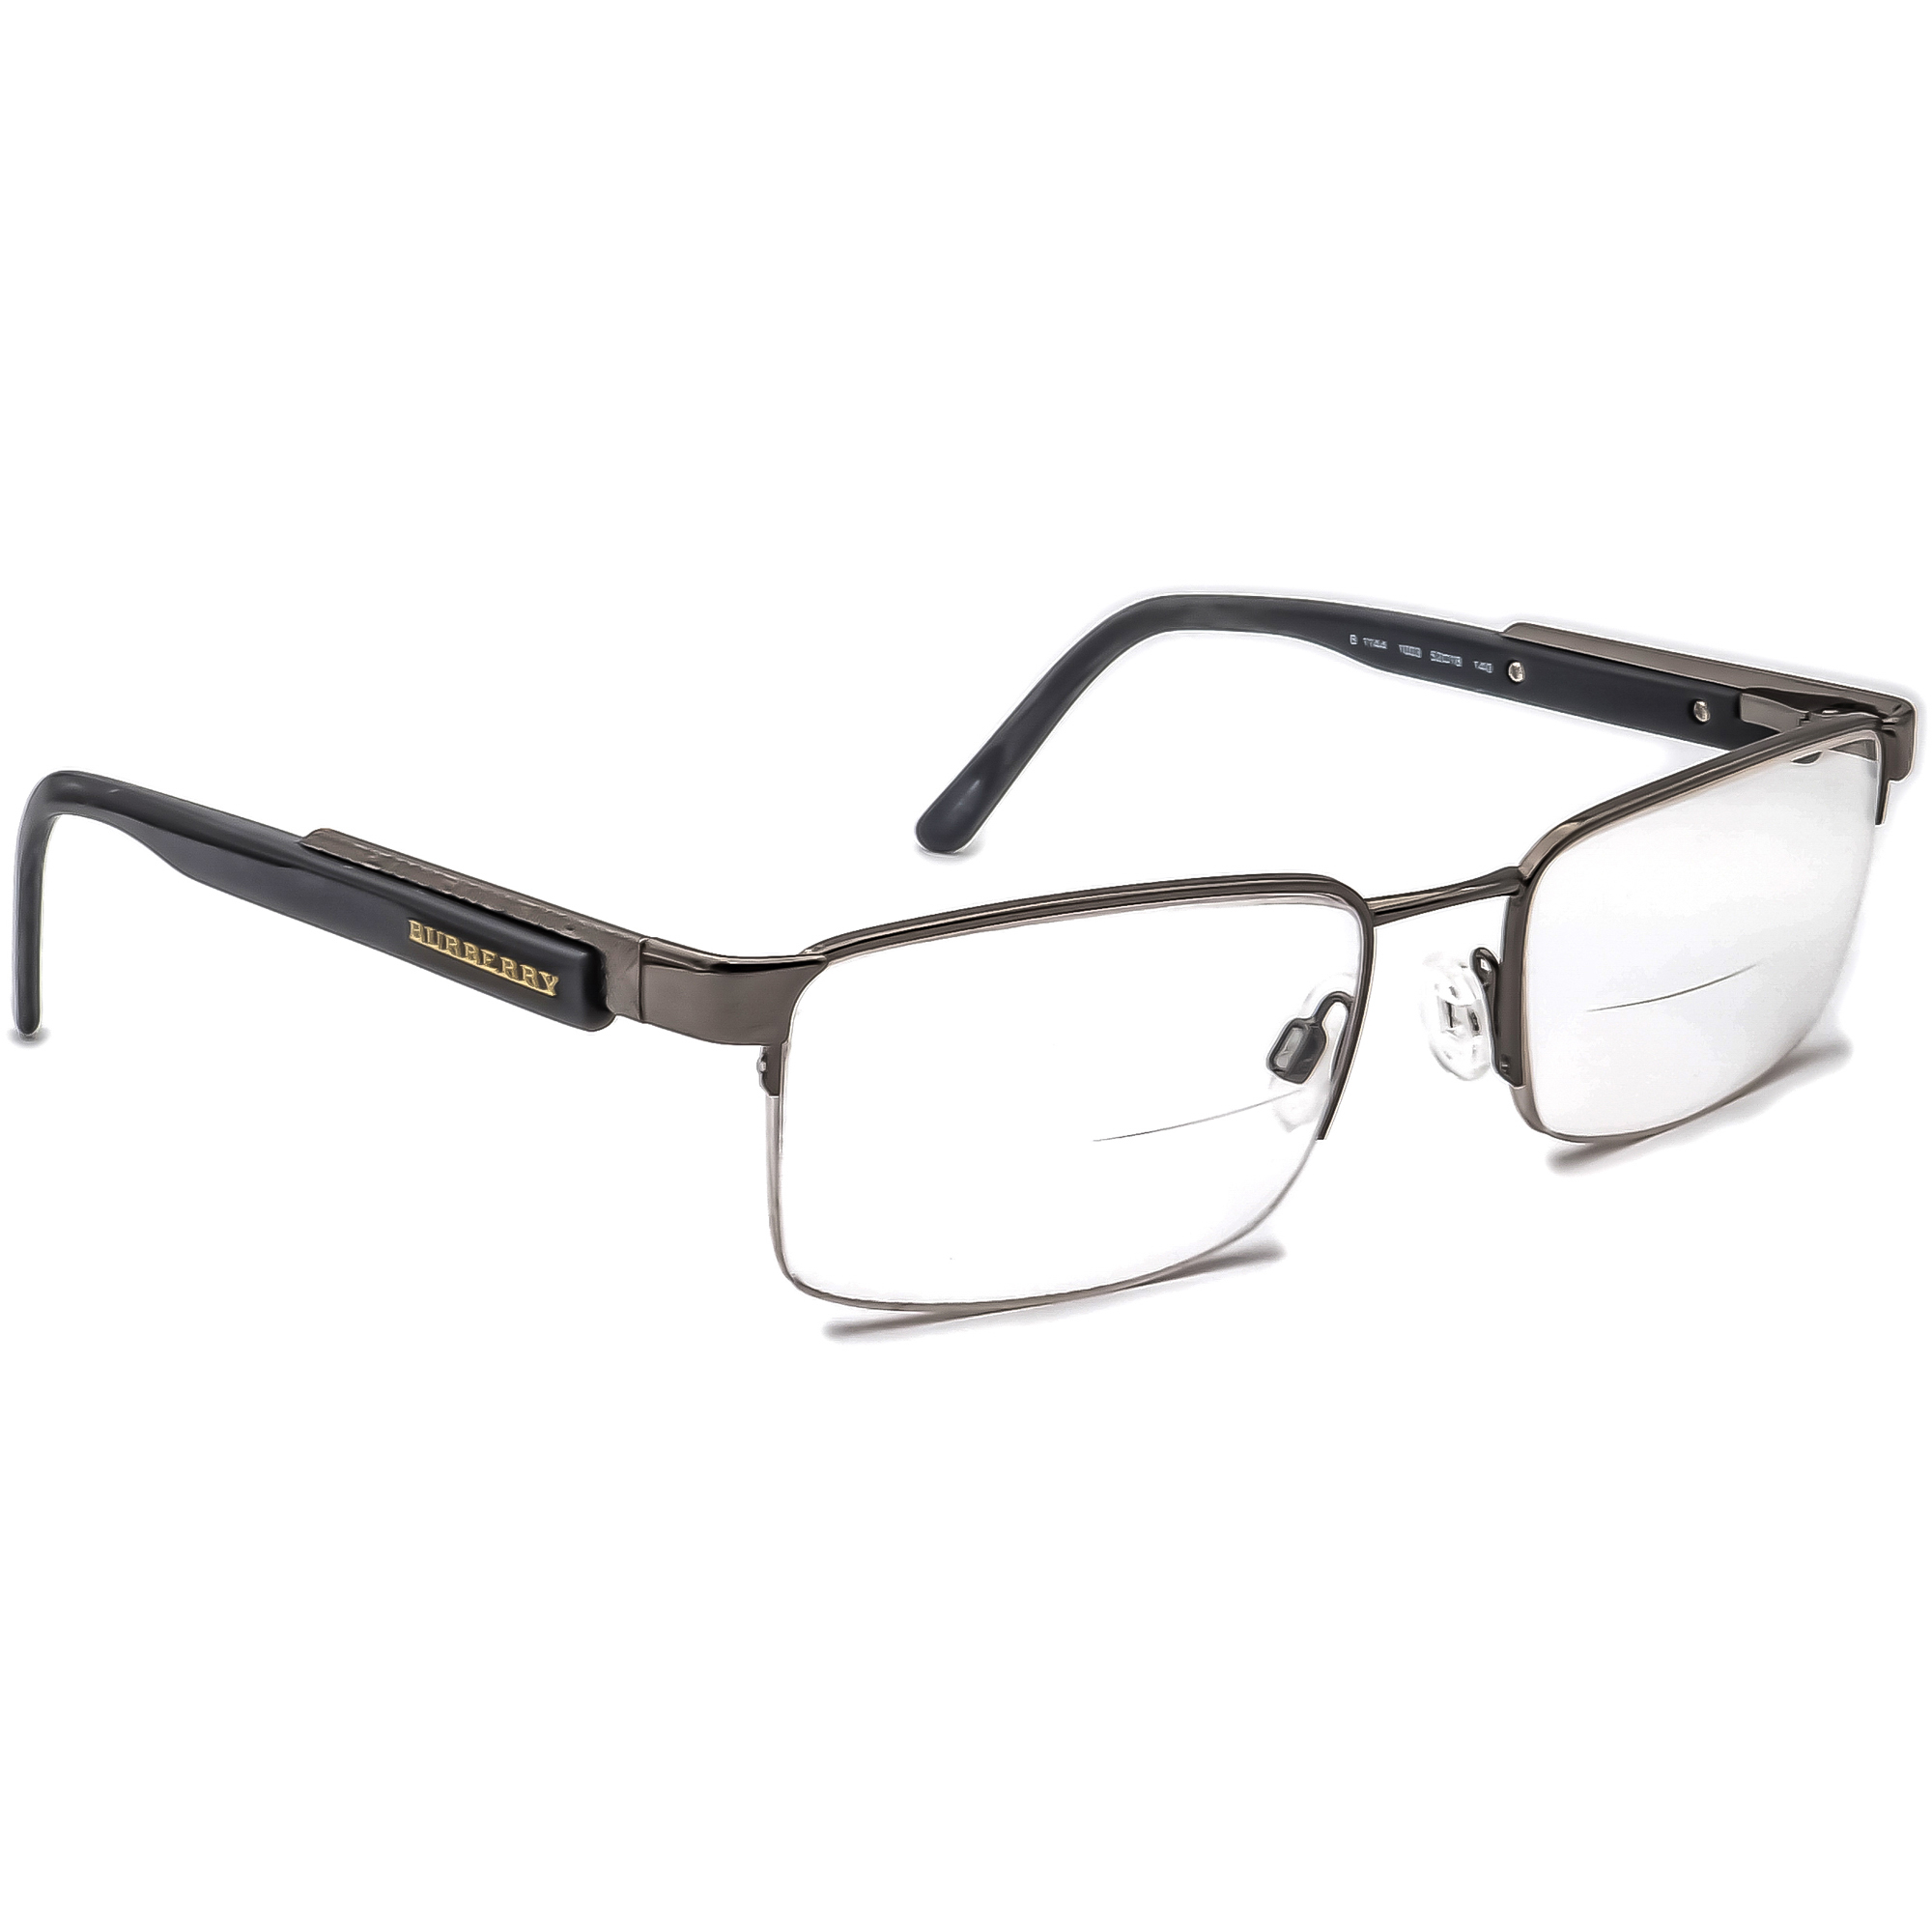 Burberry B 1144 1003 Eyeglasses